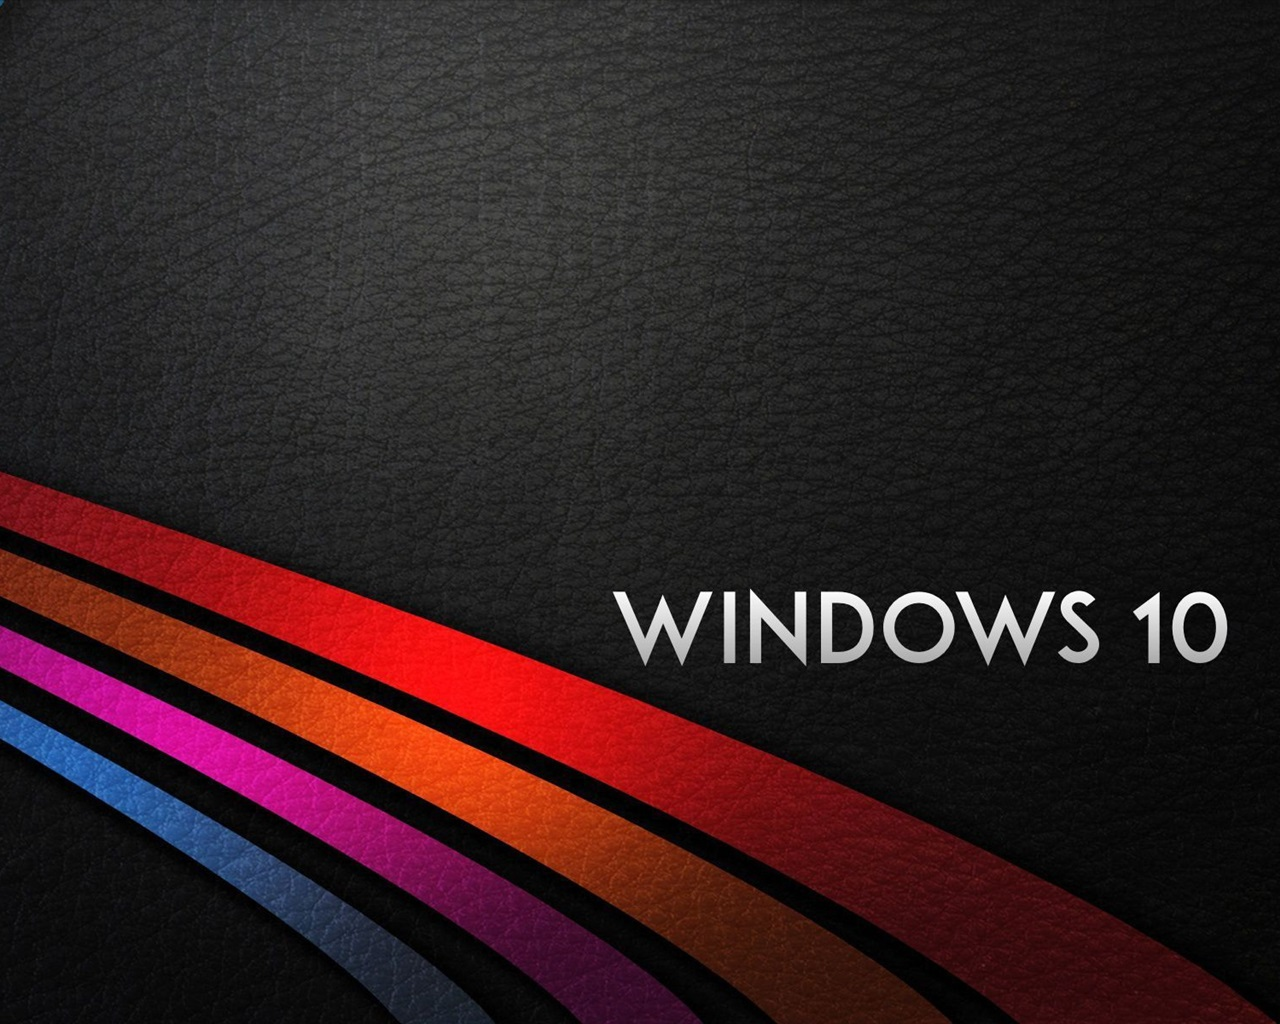 Wallpaper Windows 10 System, Rainbow Stripes Background